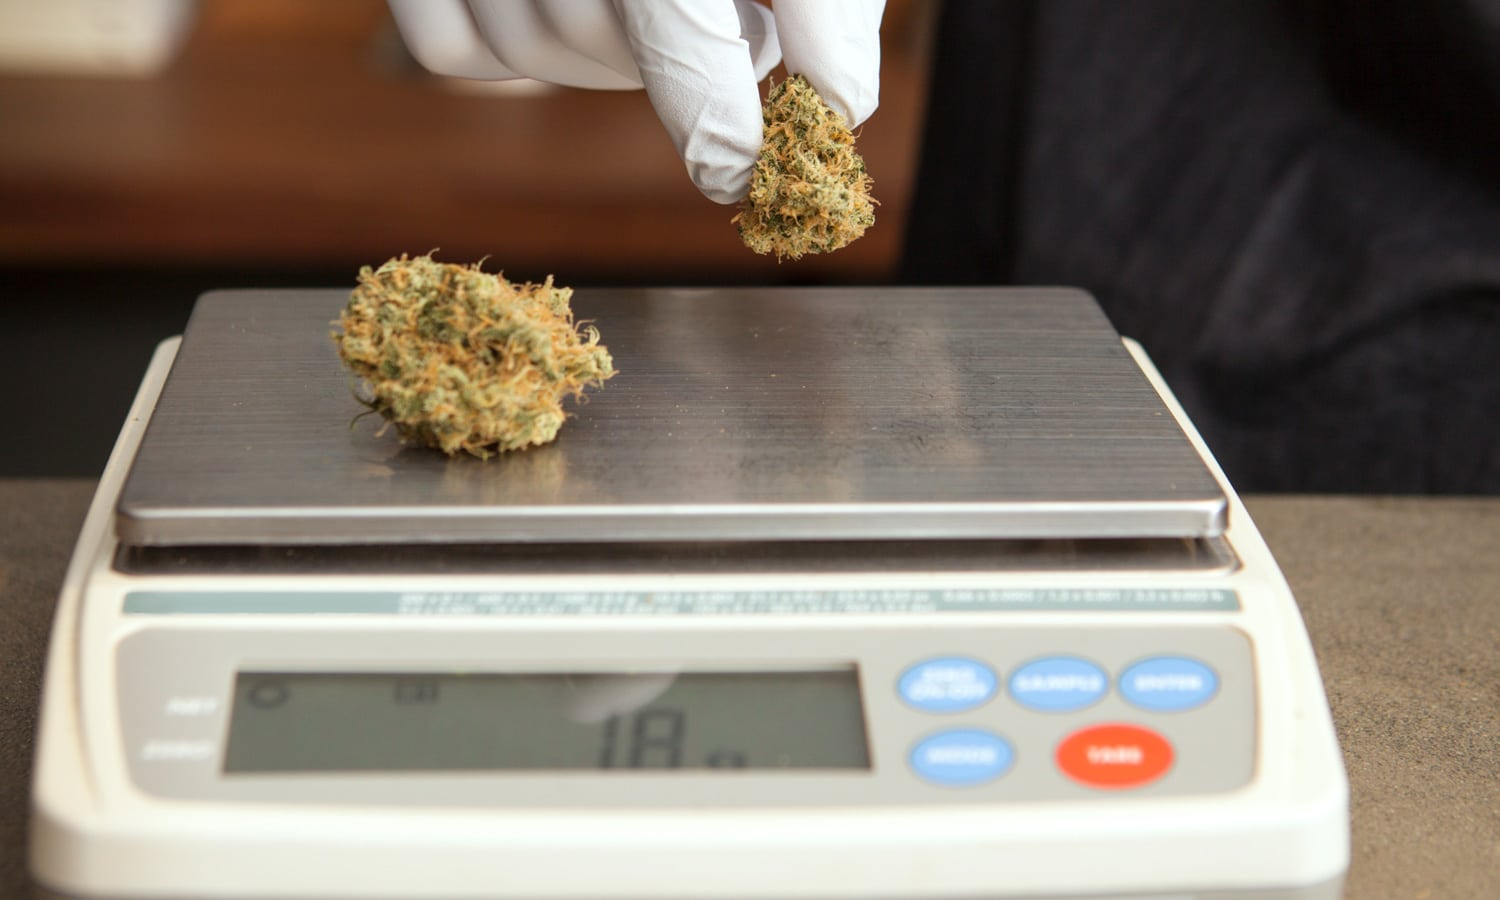 Study Says Legal Marijuana Doesn't Increase The Odds Of Underage Cannabis Use